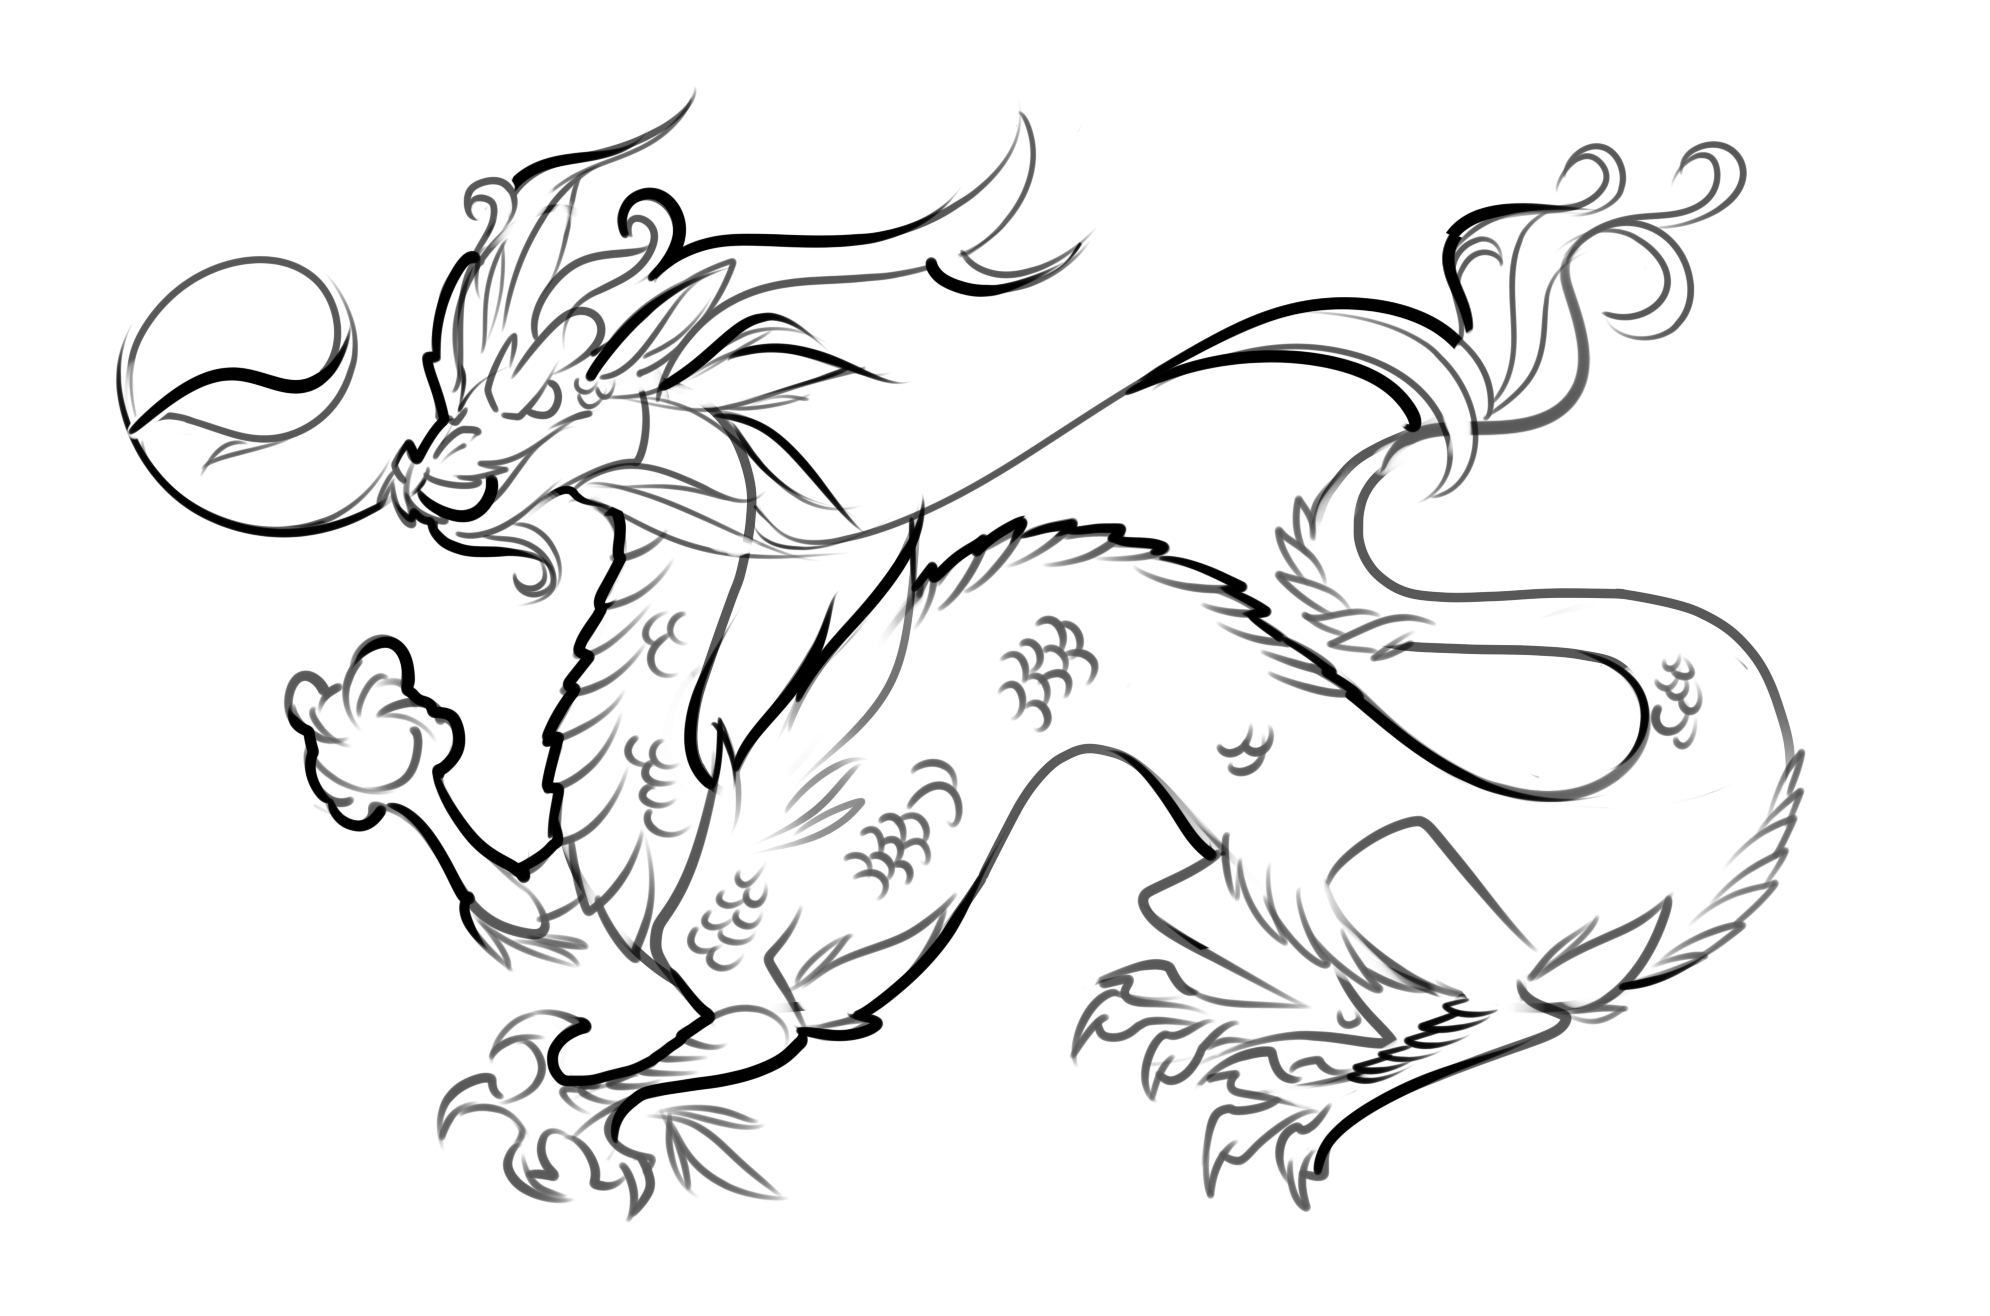 Free Printable Dragon Coloring Pages For Kids | Things That Caught - Free Printable Chinese Dragon Coloring Pages